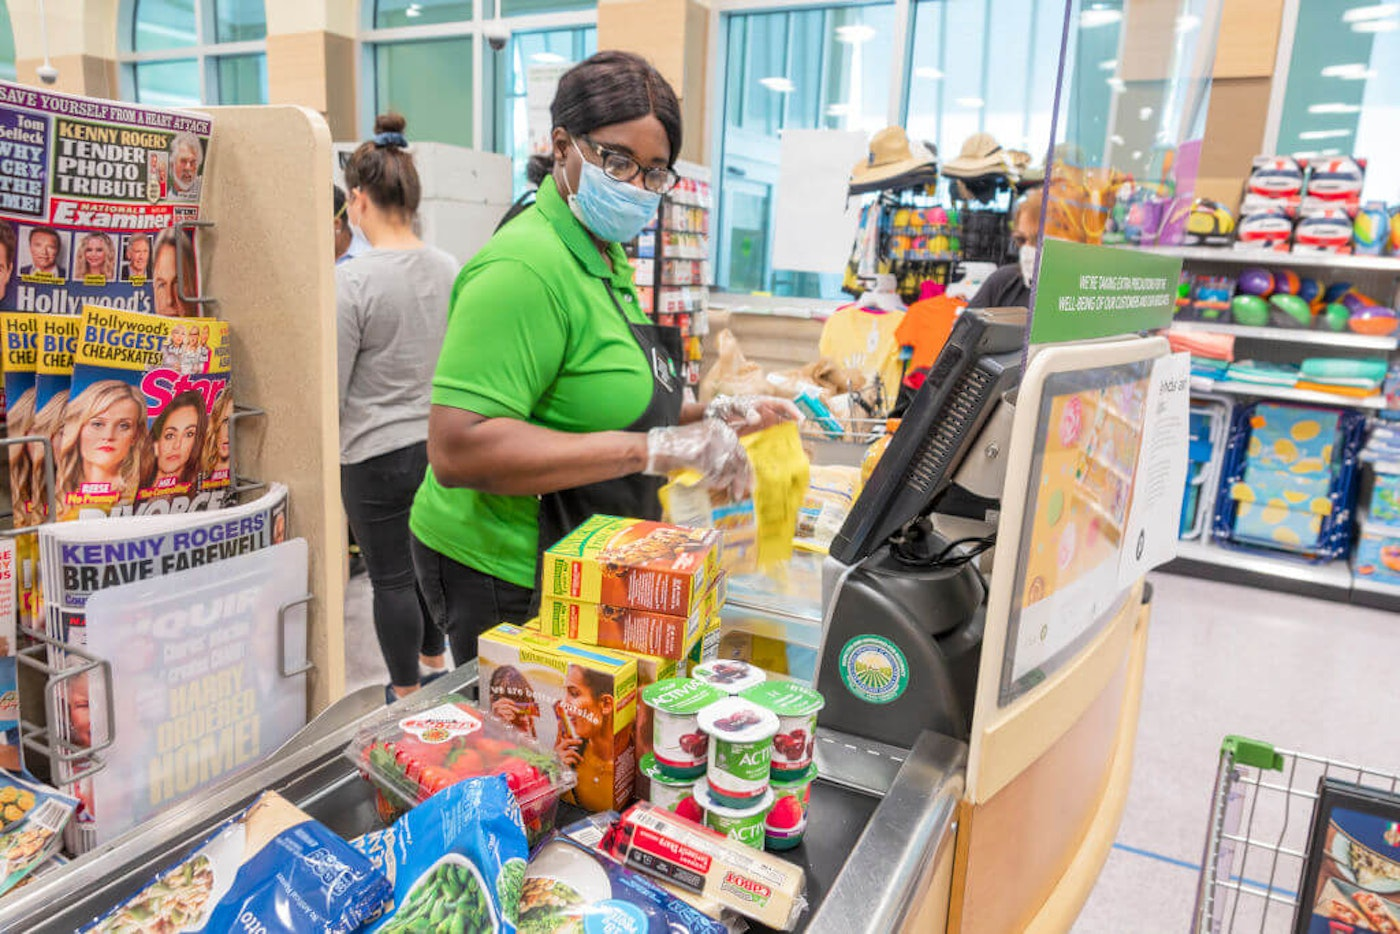 Black woman working at grocery store; Black and Latina women hit hard by job loss